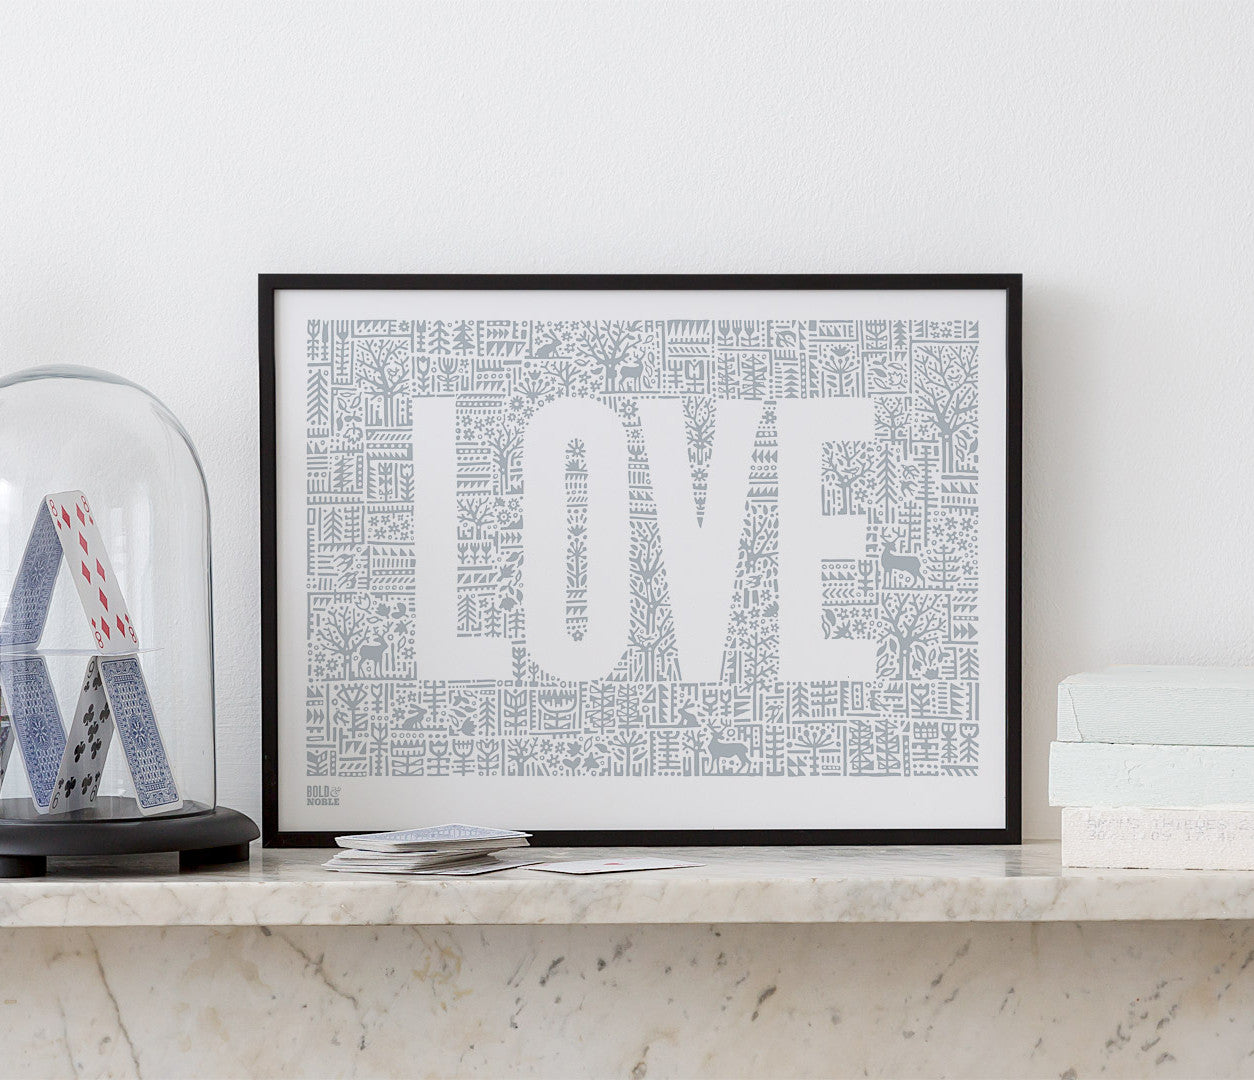 Pictures and Wall Art, Screen Printed Love Letters in Warm Grey